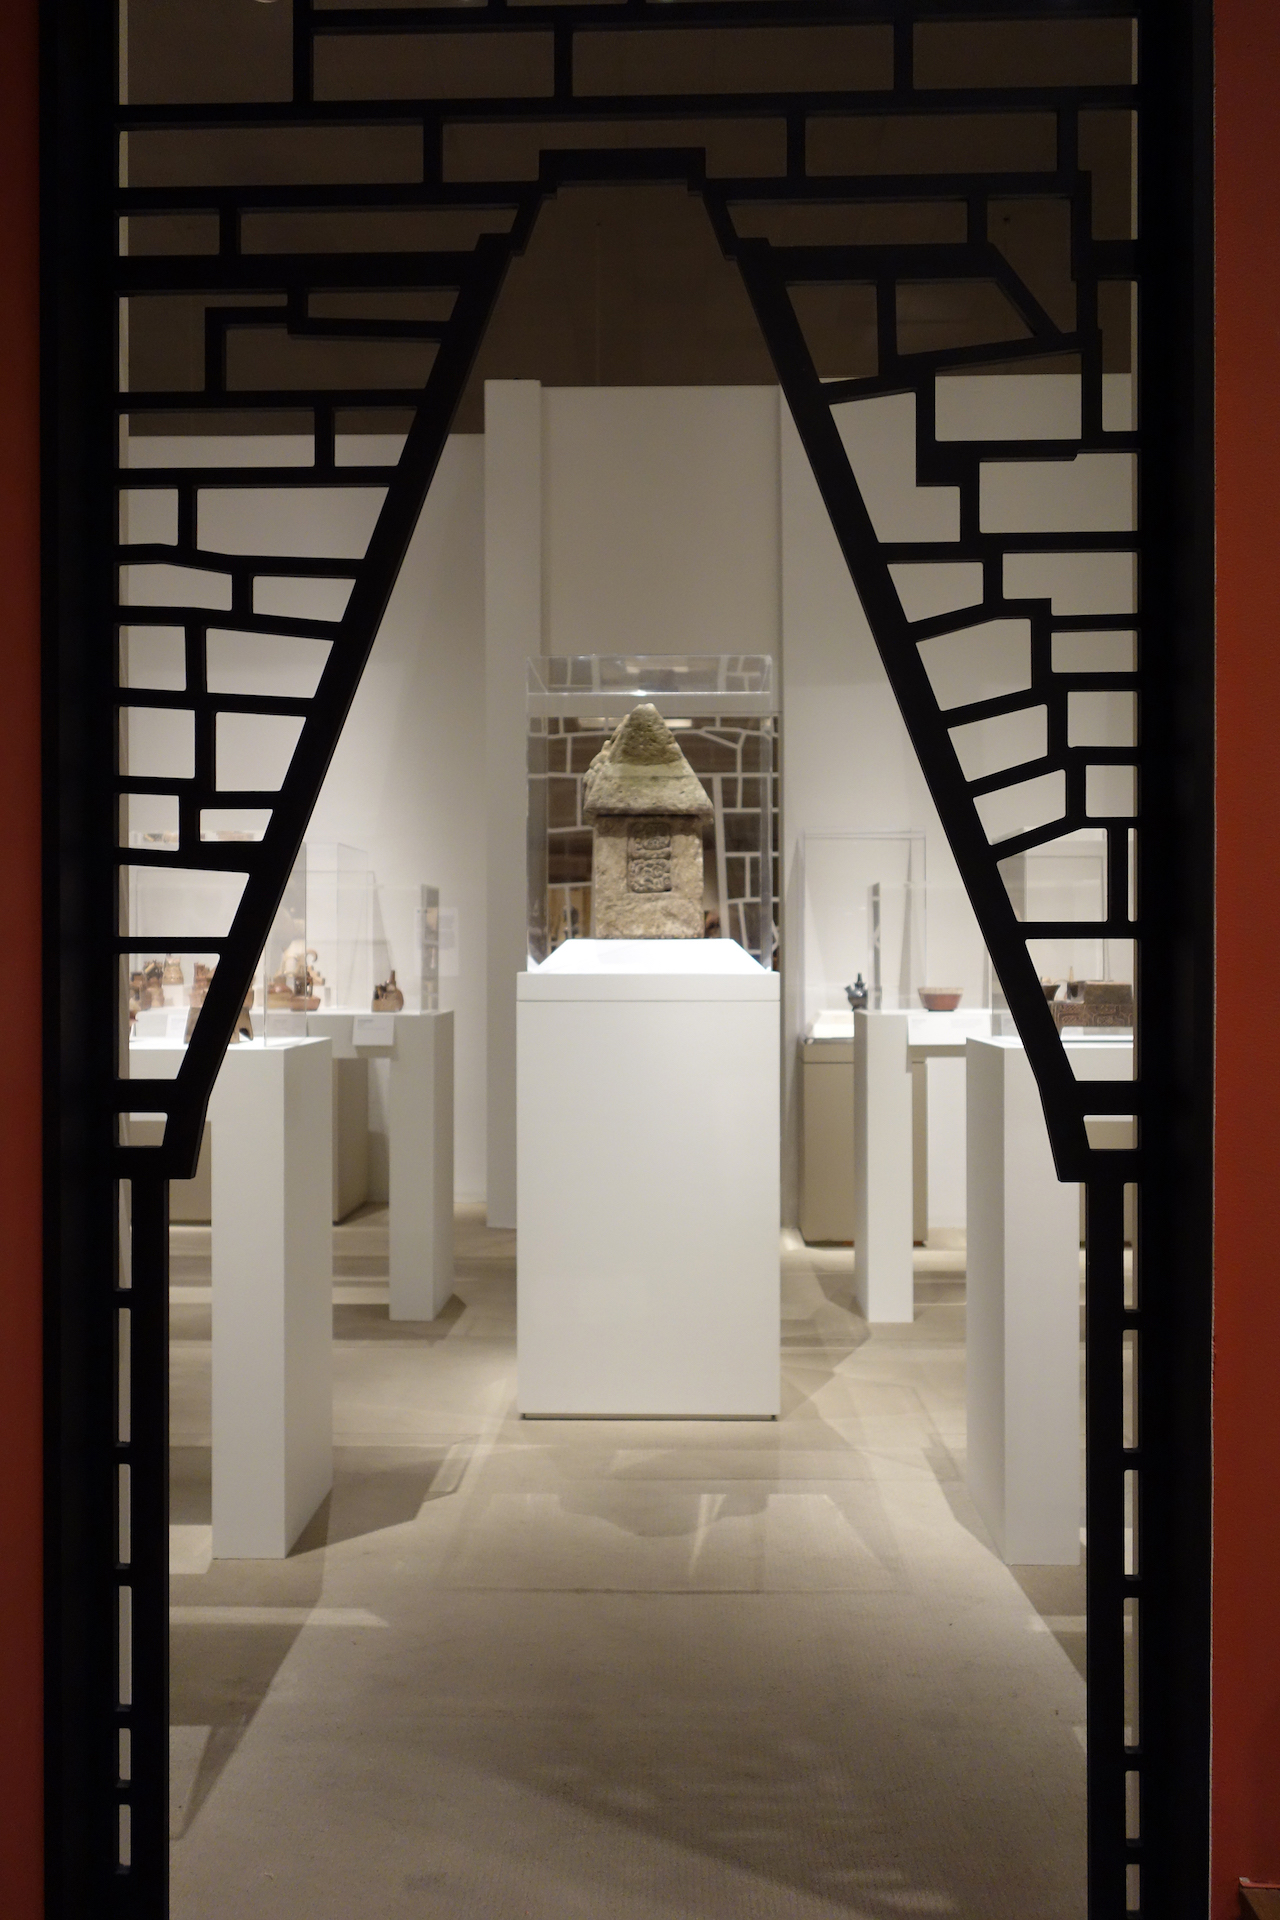 Design for Eternity: Architectural Models from the Ancient Americas